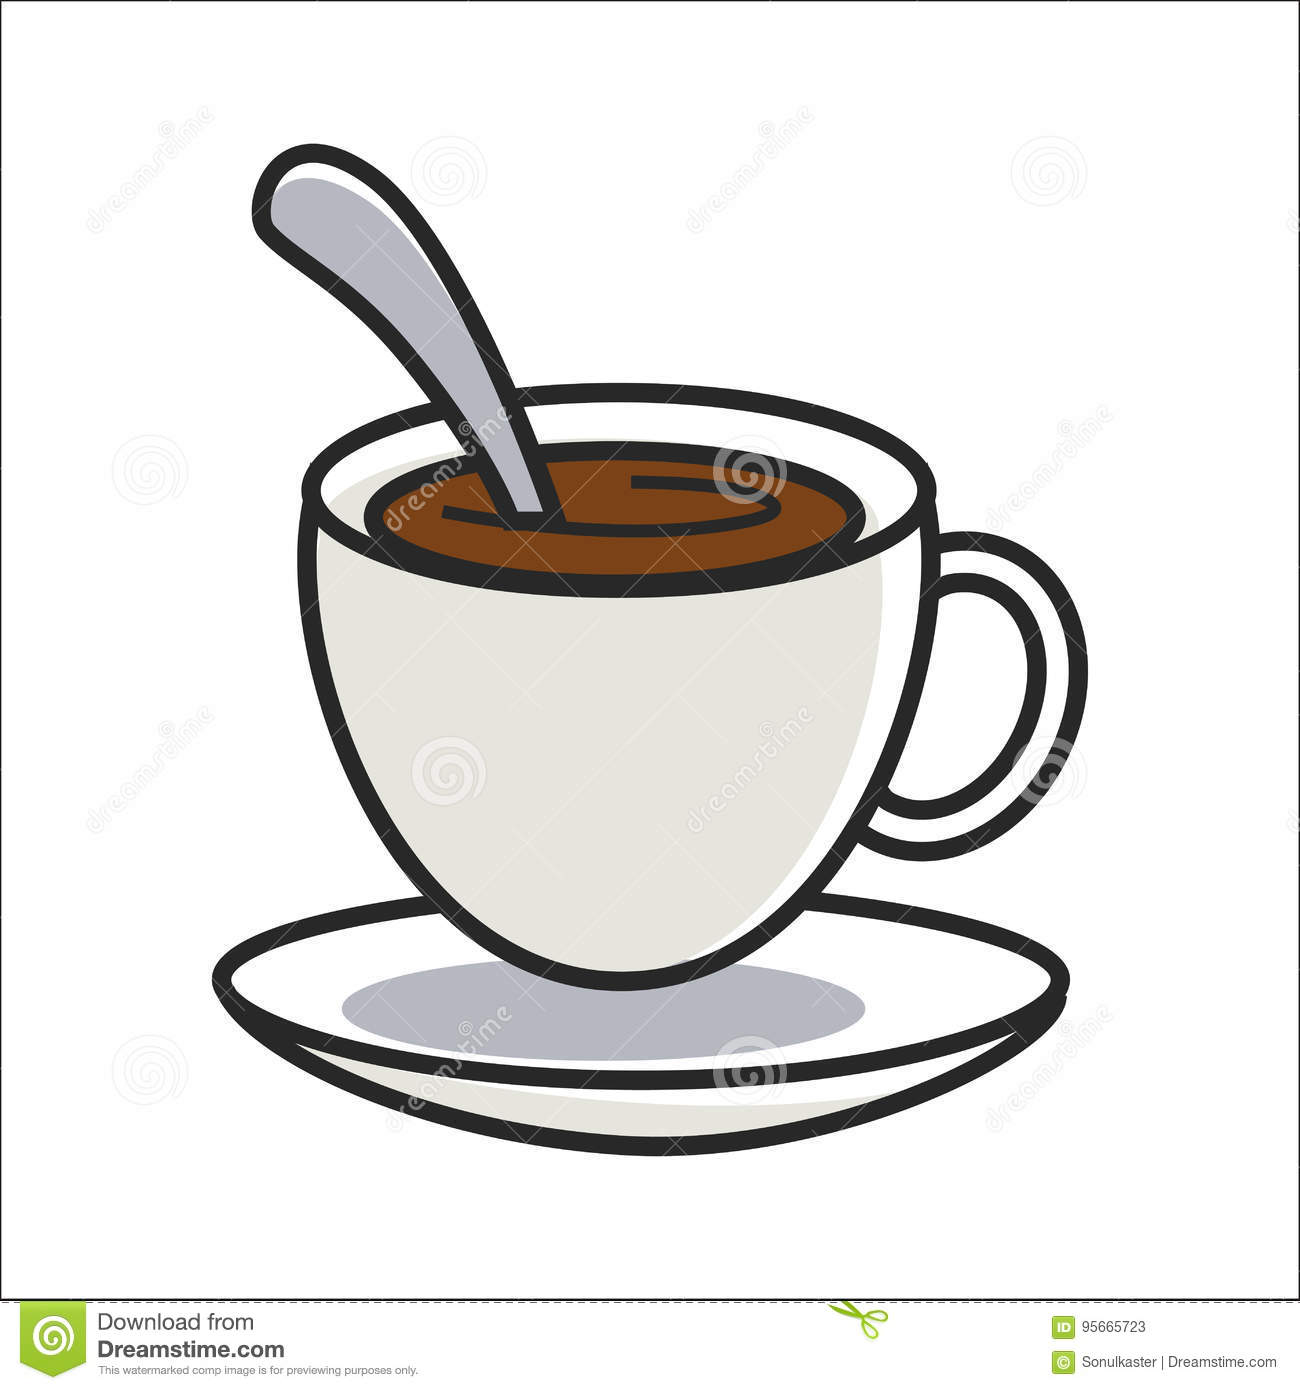 Small Coffee Cups And Saucers Cup Of Coffee On Saucer And With Spoon Inside Stock Vector